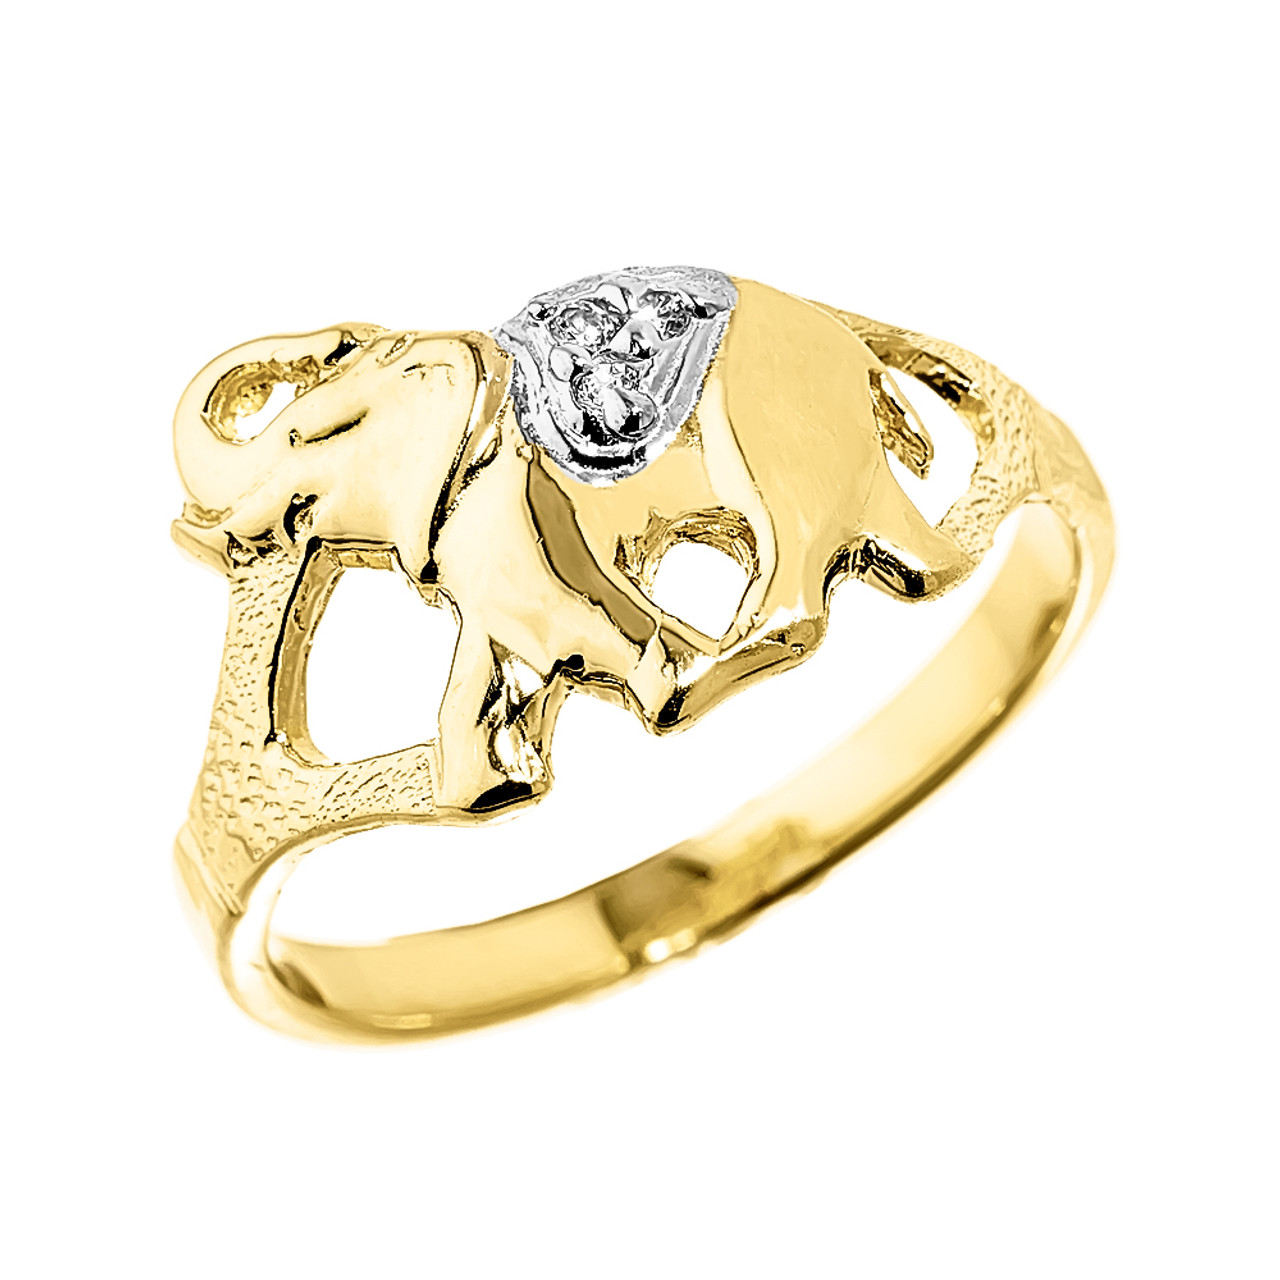 engagement zirconia rings cubic more details and black can solid find you at pin elephant out white ring